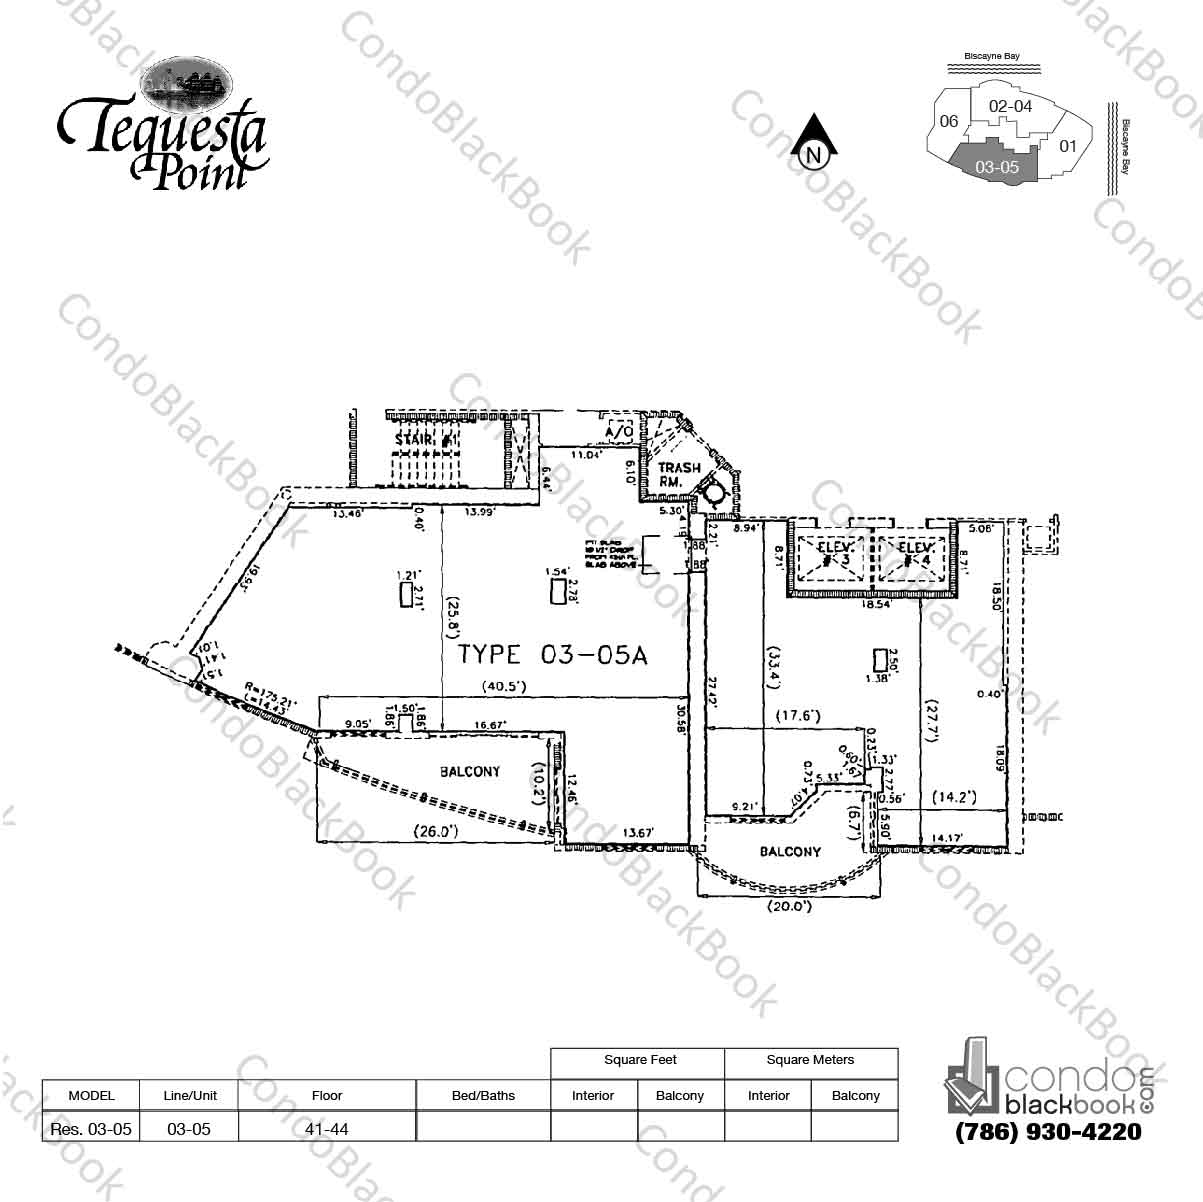 Floor plan for Three Tequesta Point Brickell Key Miami, model Res. 02-04, line 02-04